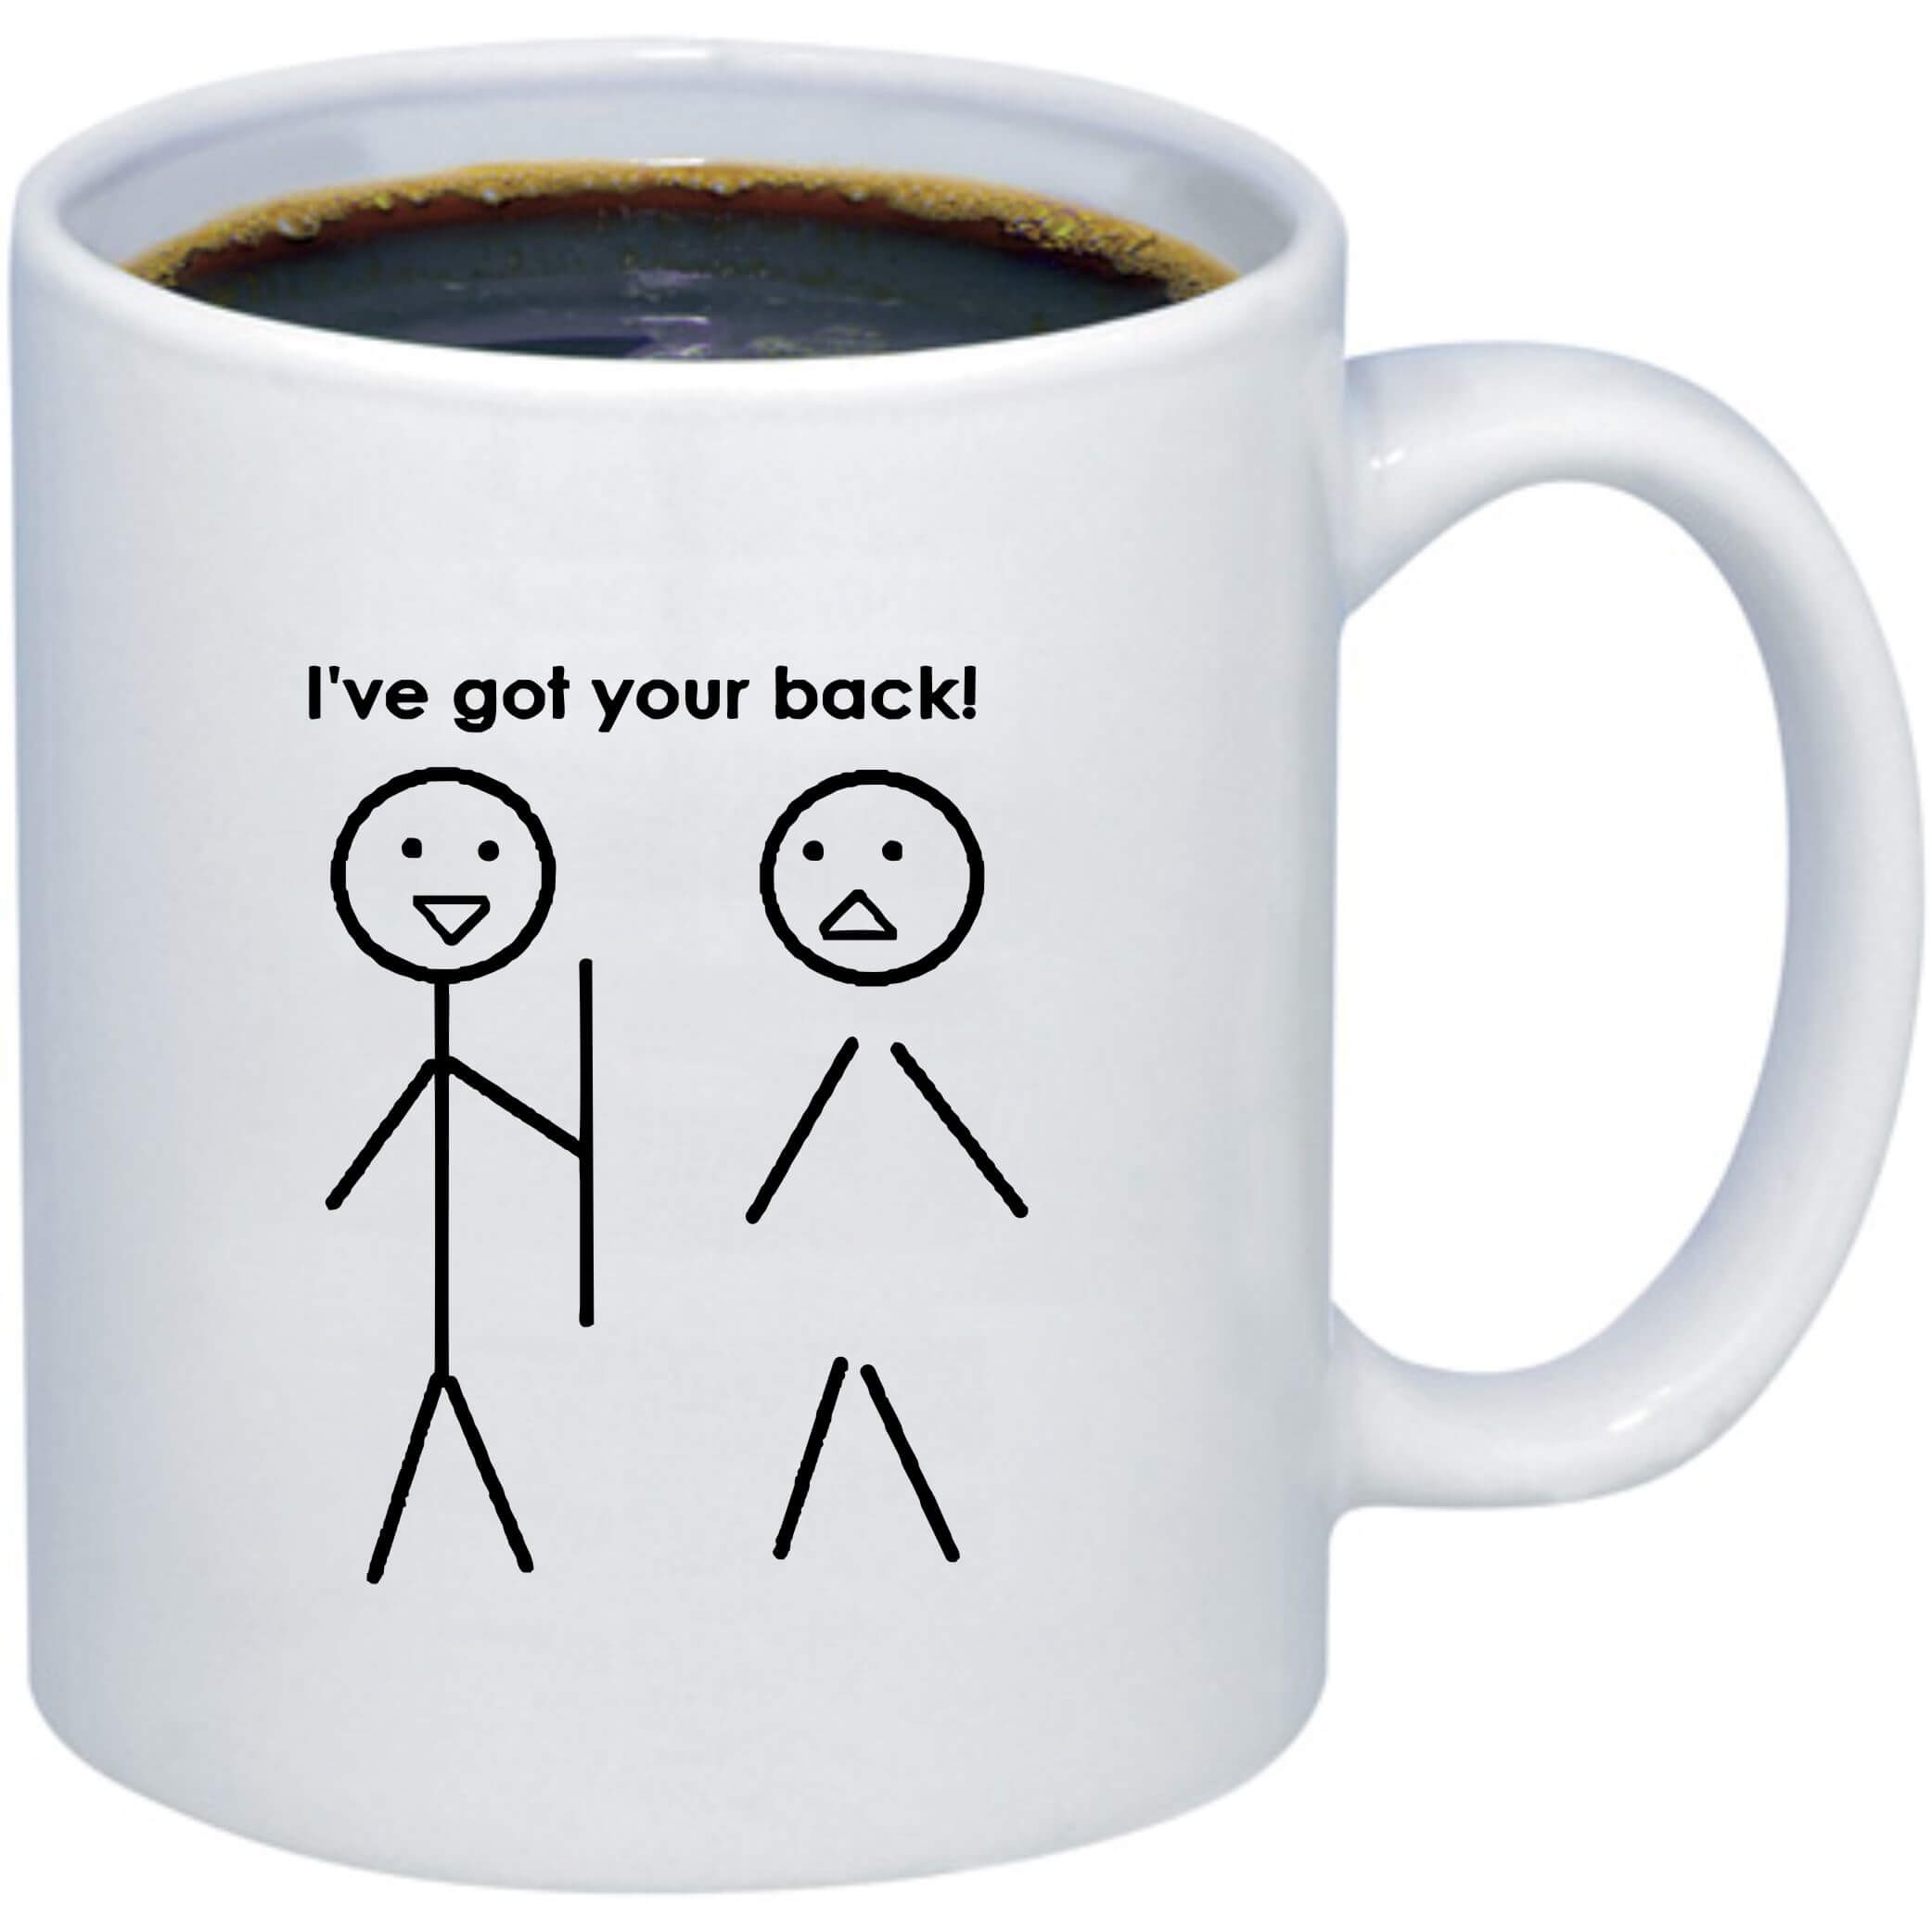 Mug That Says Coffee I 39ve Got Your Back Funny Coffee Mug 904 Custom